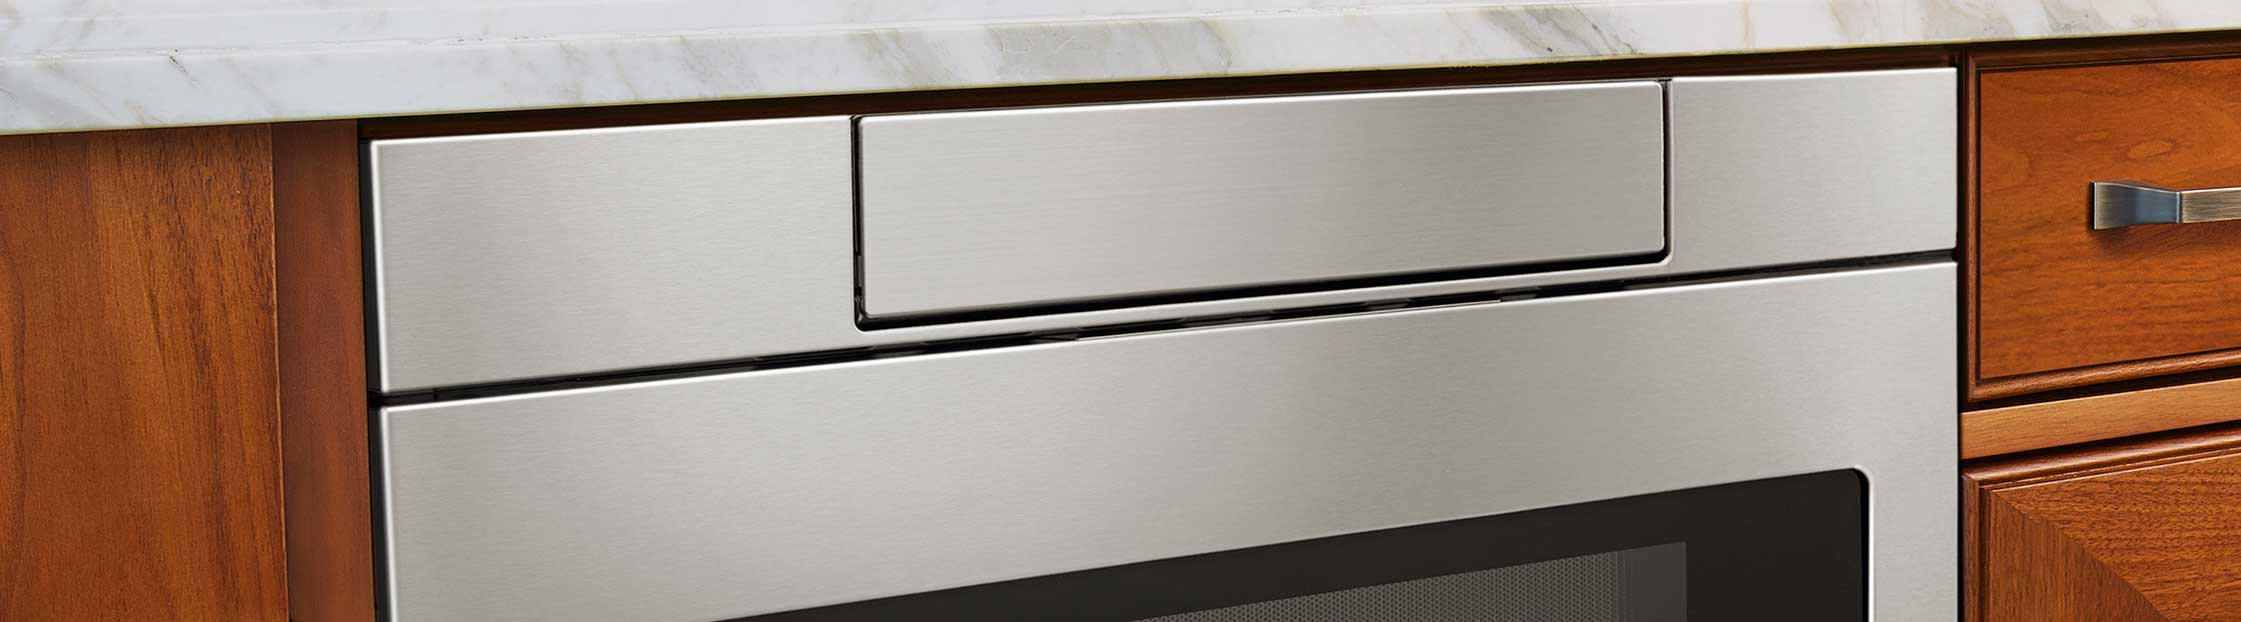 Designed For Your Dream Kitchen The Sharp Microwave Drawer